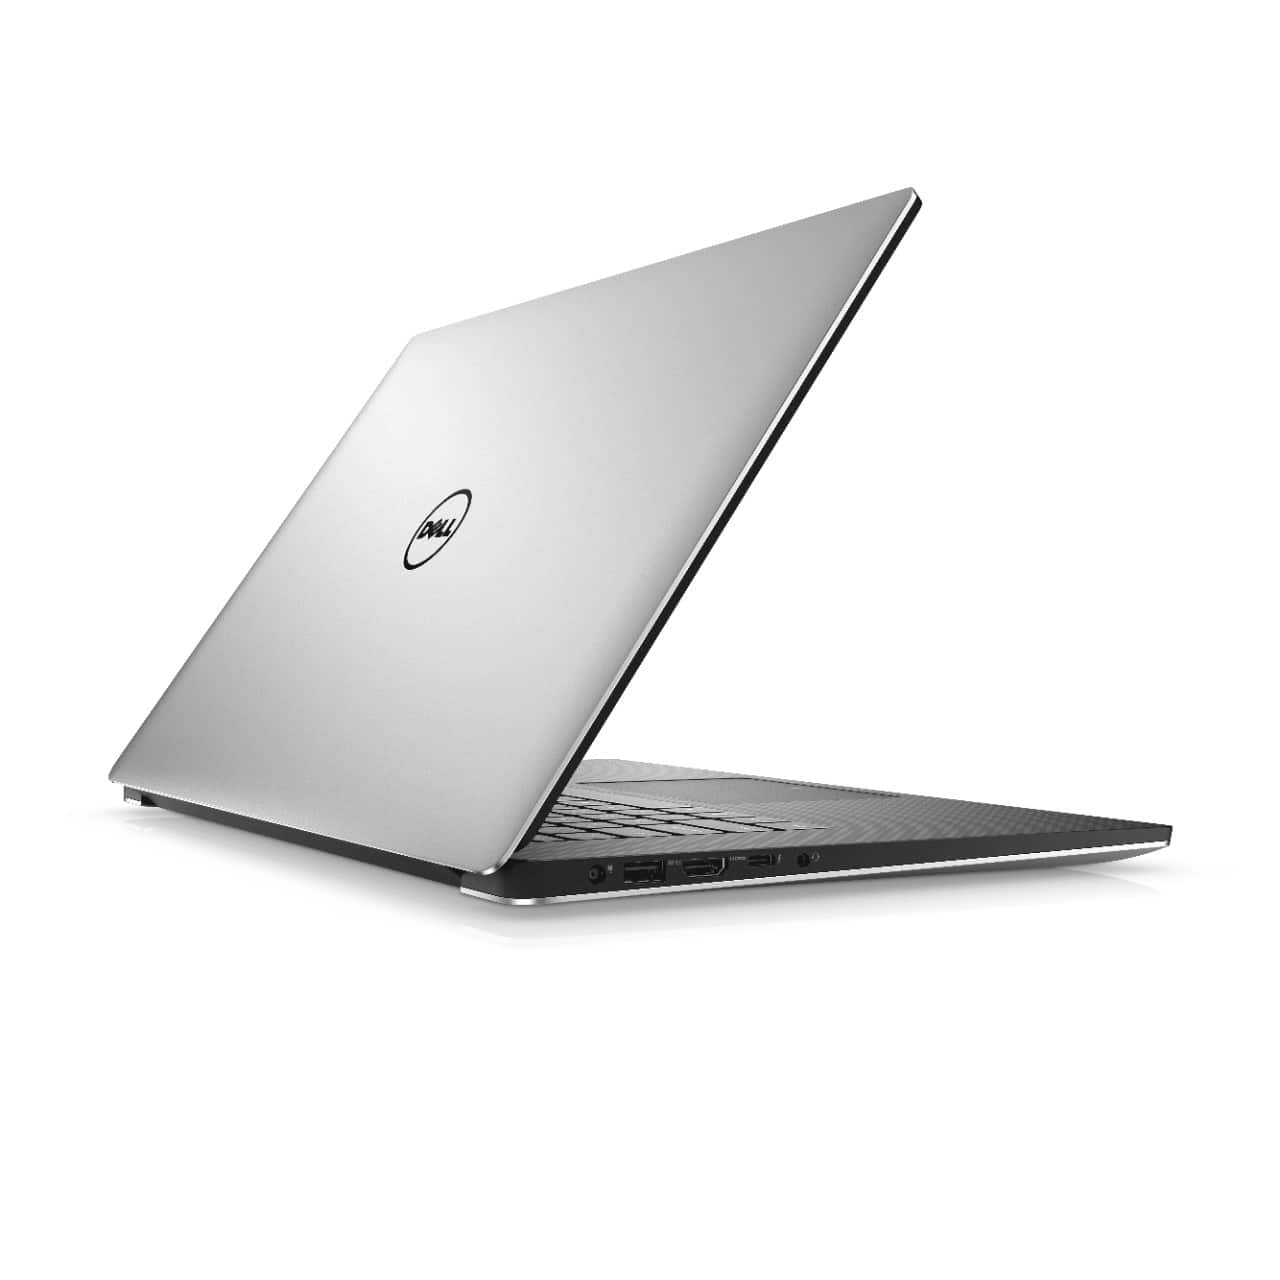 Dell Home Outlet: Dell XPS 15 9560 Touchscreen Laptop (Refurbished): 4K UHD, i7-7700HQ, 16GB DDR4, 512GB PCIe M.2 NVMe SSD, GTX 1050 4GB - $1150 + Free Shipping